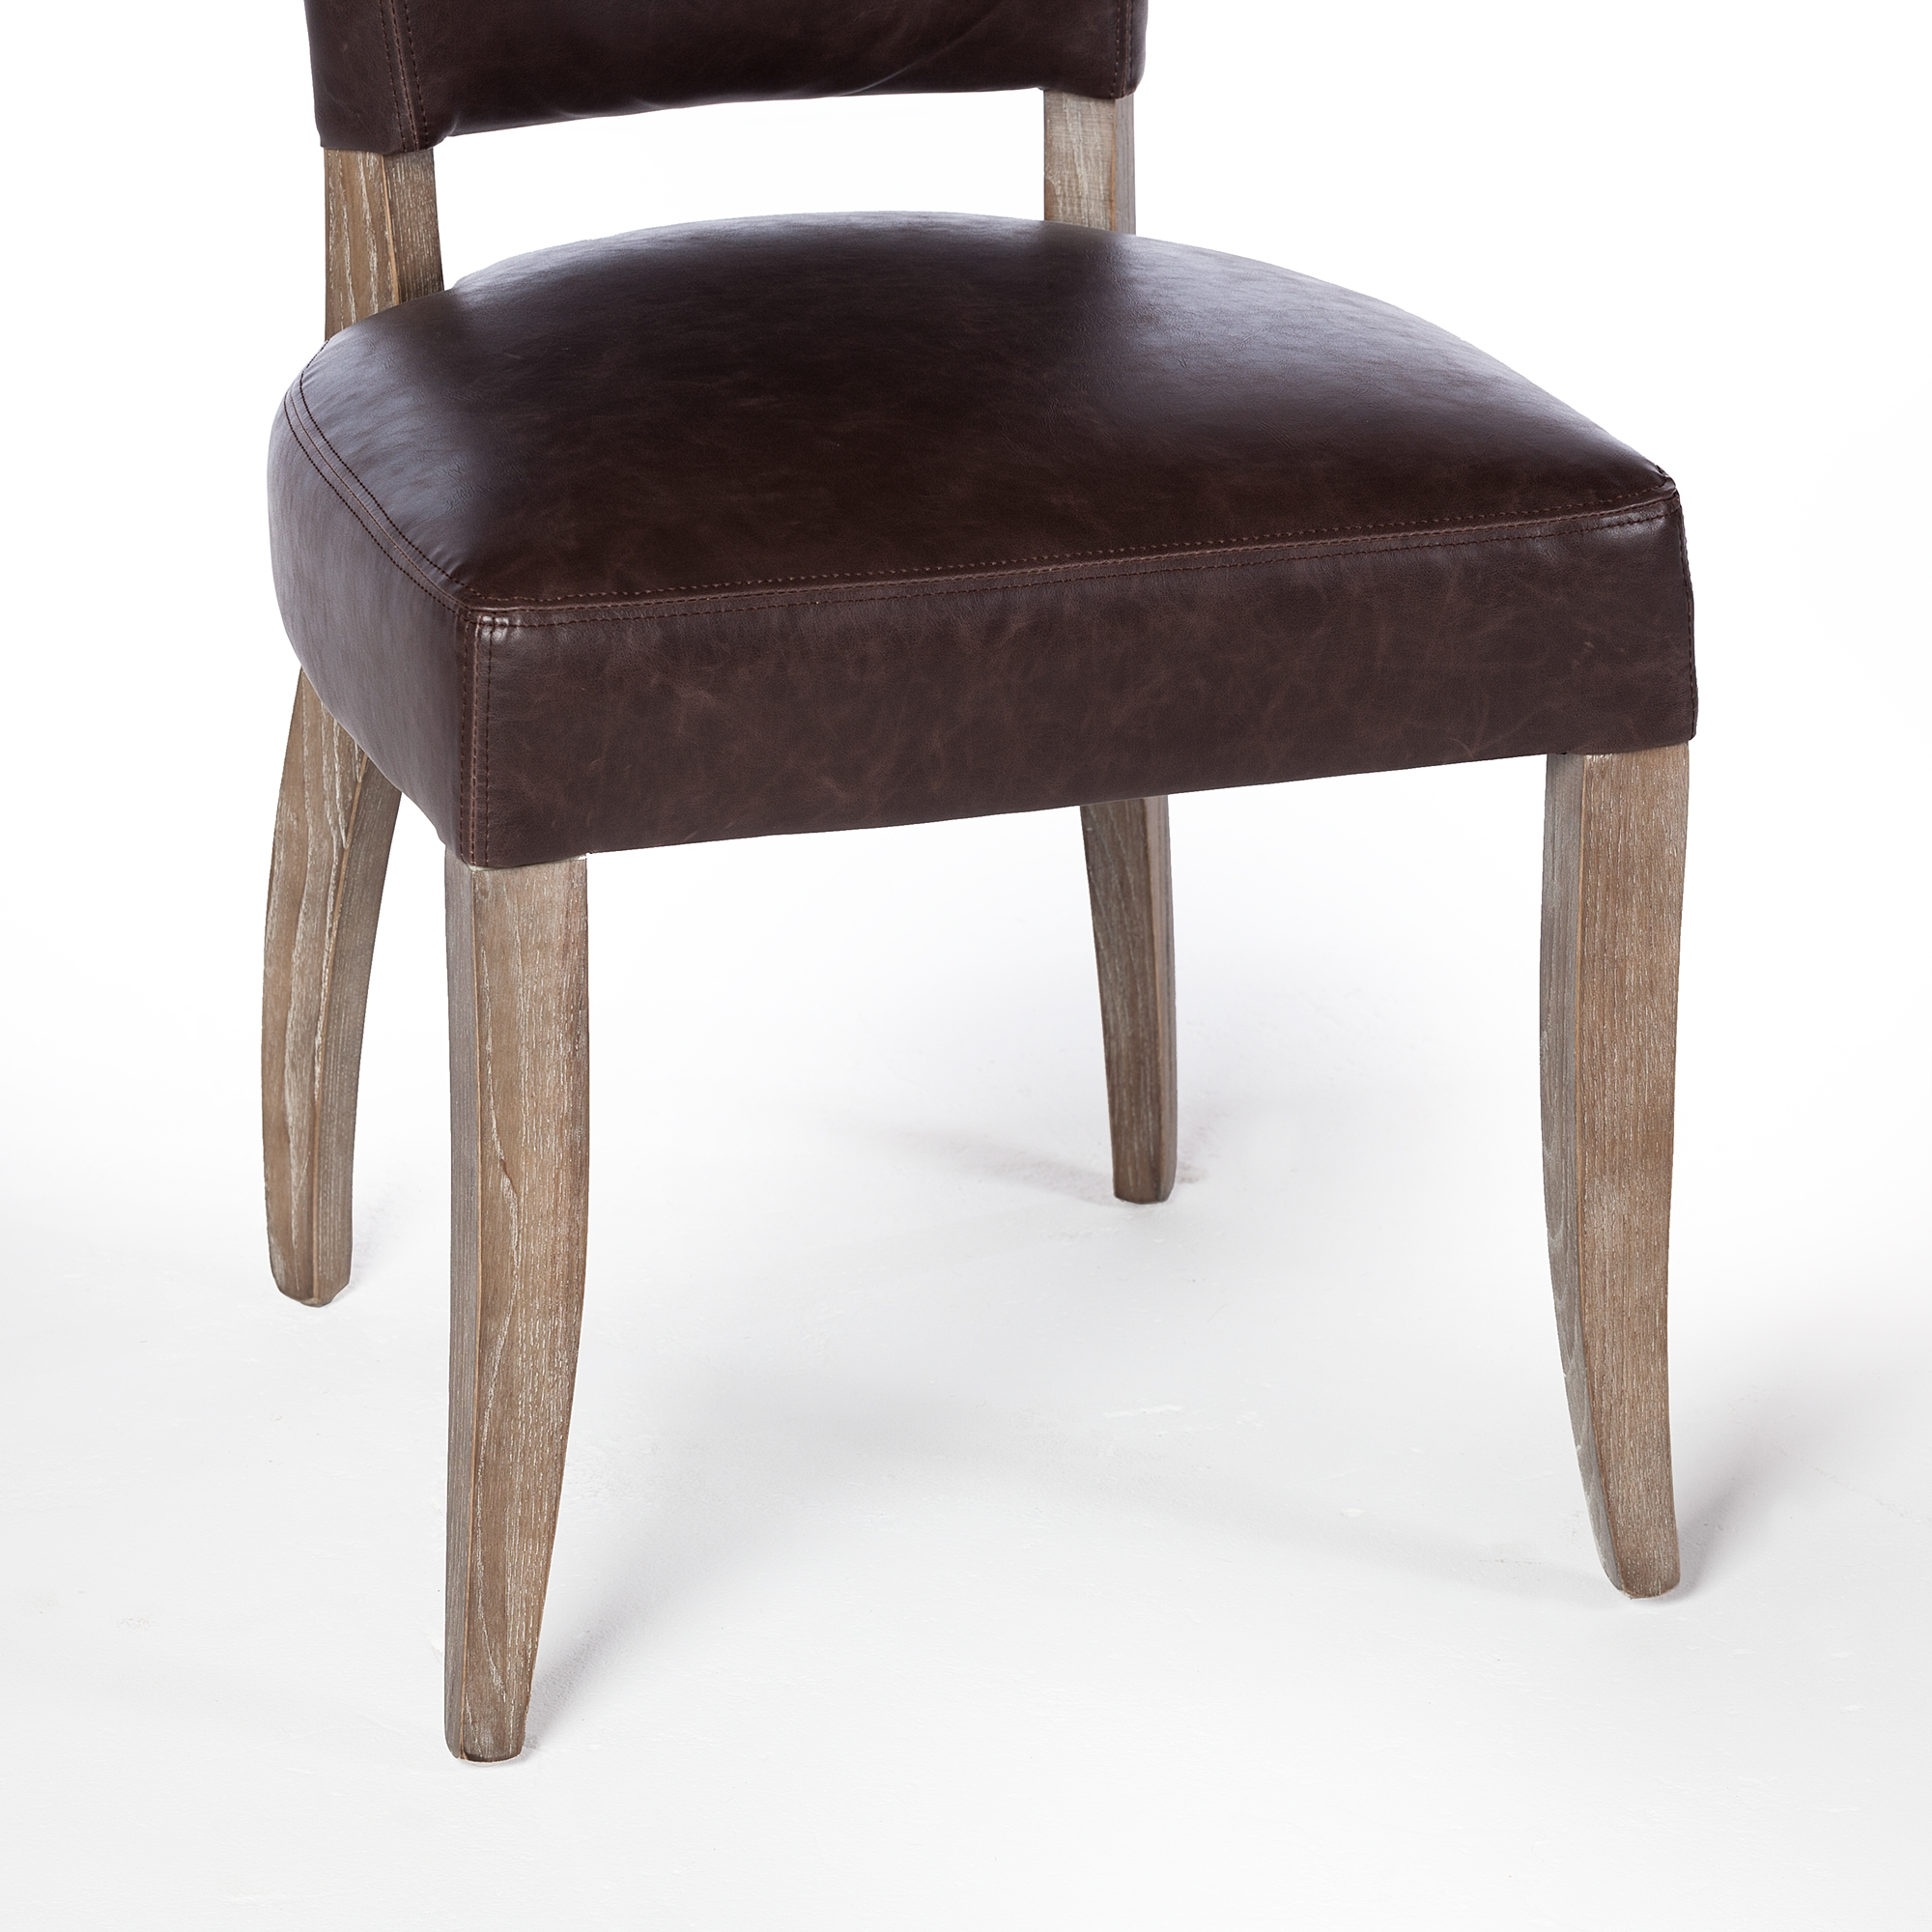 Tremendous Adele Leather Side Chair In Vintage Brown Machost Co Dining Chair Design Ideas Machostcouk